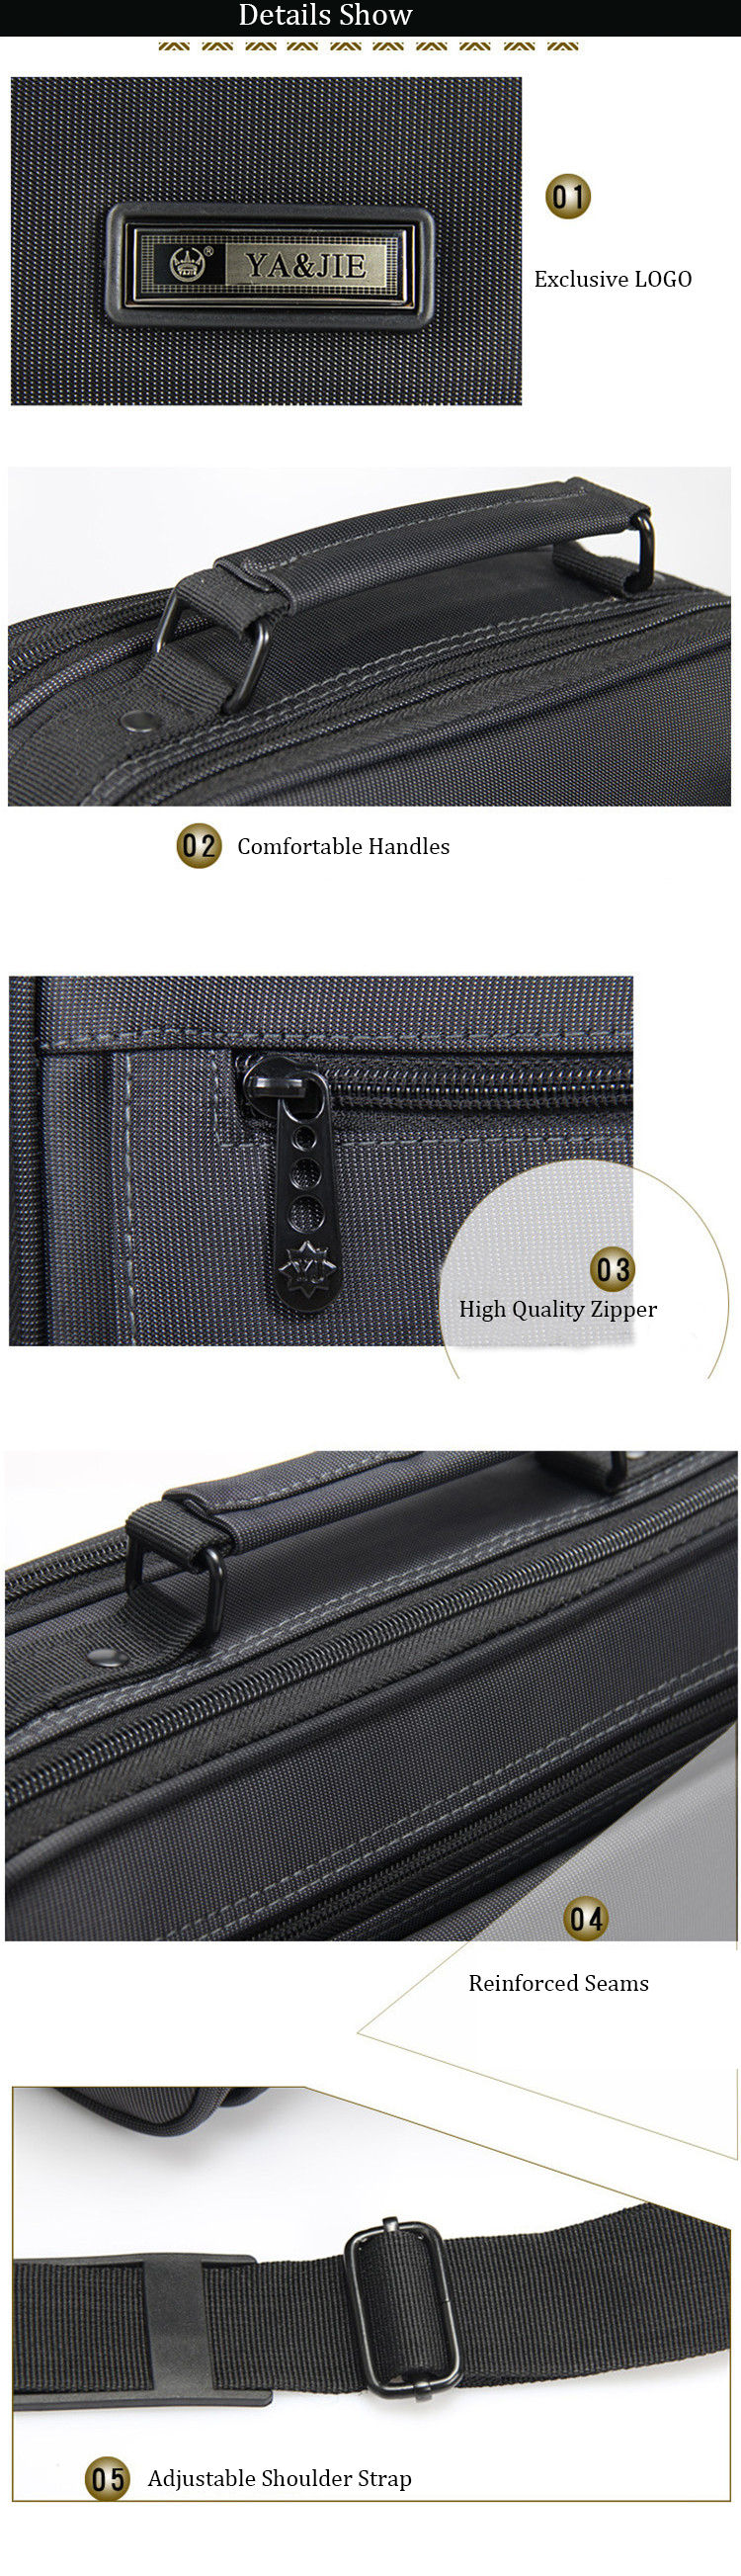 Hc81565b751c34c84b2400031c2a29428U - New Briefcases Of Sizes Men's Laptop Bag Top Quality Waterproof Men bags Business Package Shoulder Bag masculina briefcase